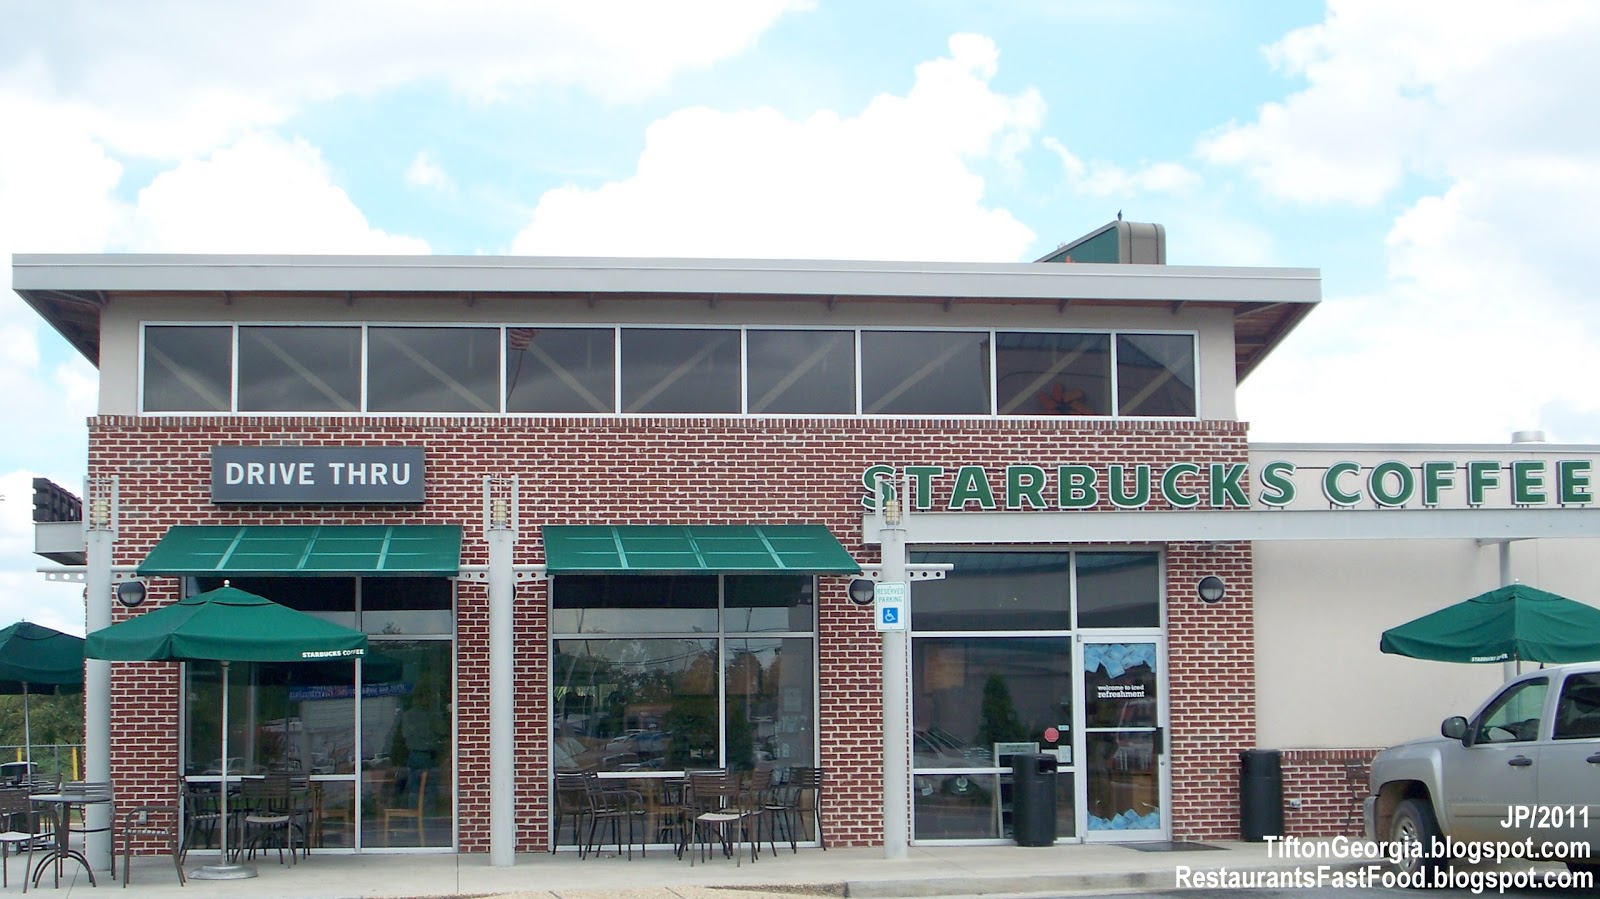 Starbucks Coffee Tifton Georgia Hwy 82 I 75 Espresso Restaurant Ga